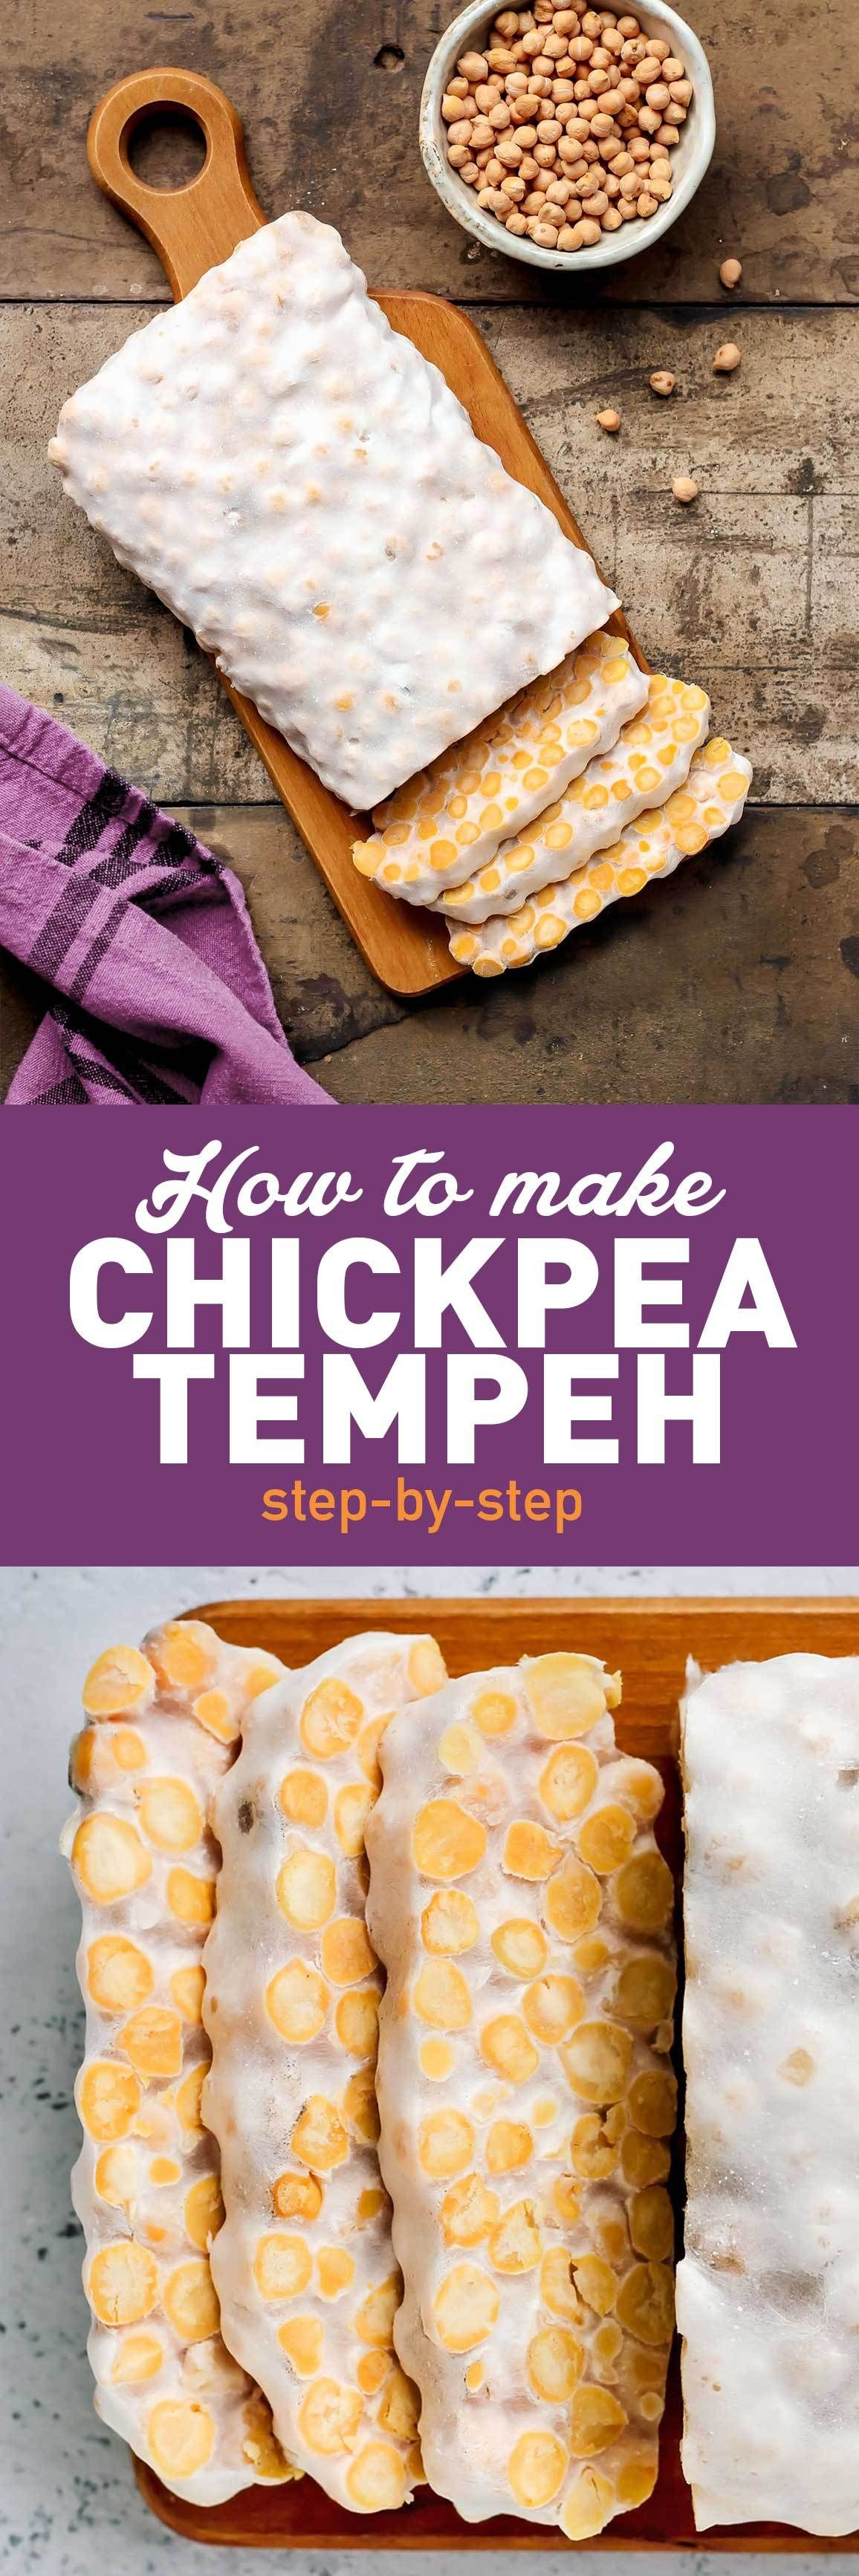 How To Make Chickpea Tempeh Full Of Plants Recipe Fermented Foods Tempeh Food